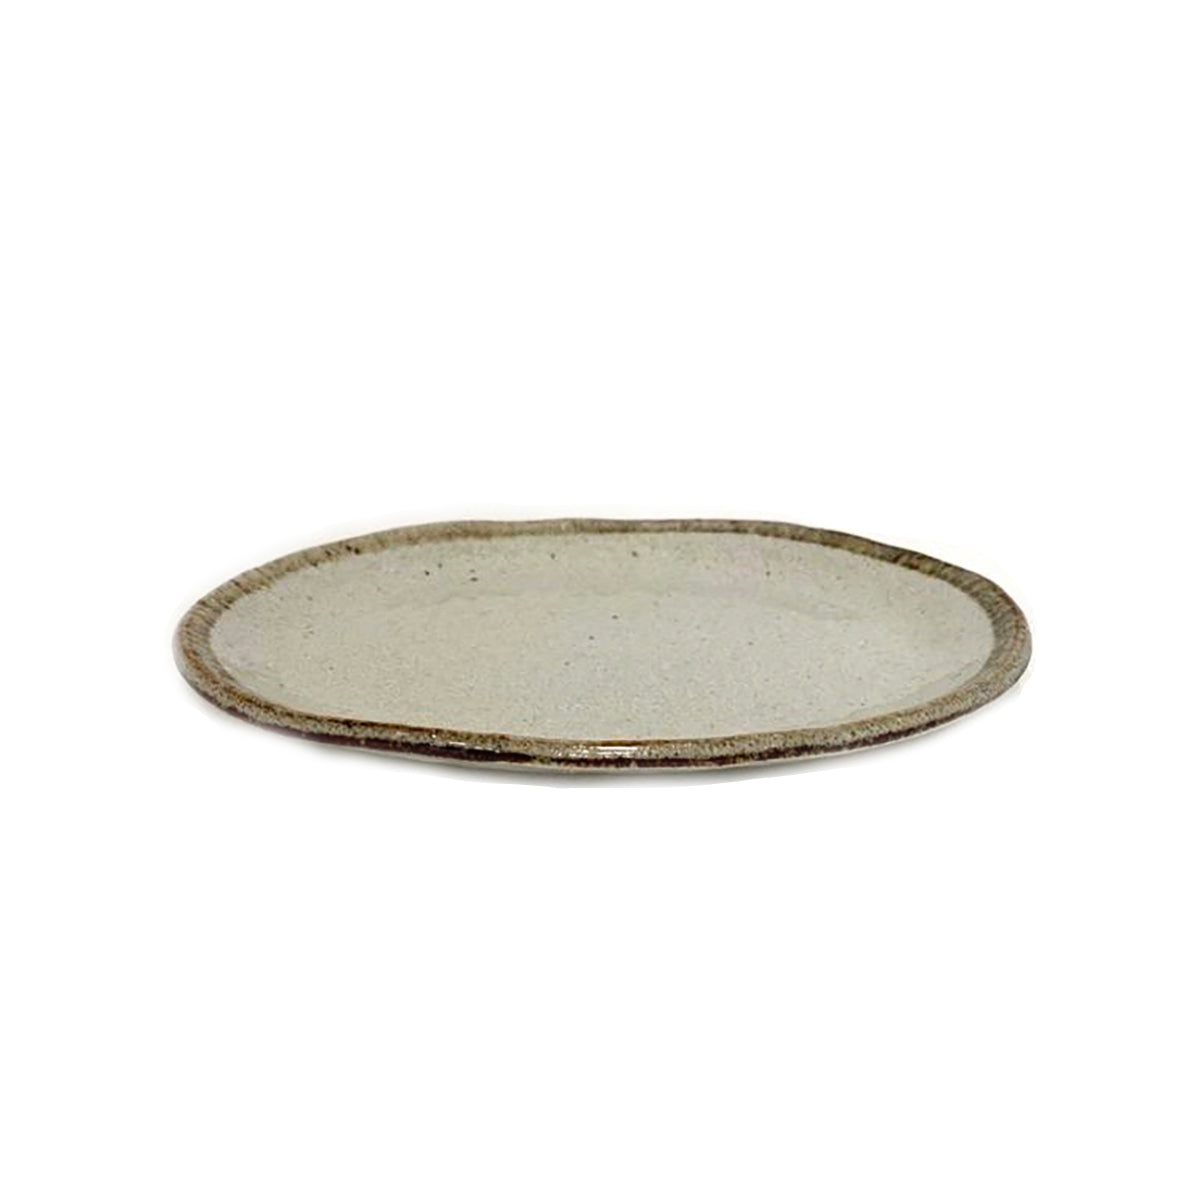 Shirokaratsu Oval Plate Large